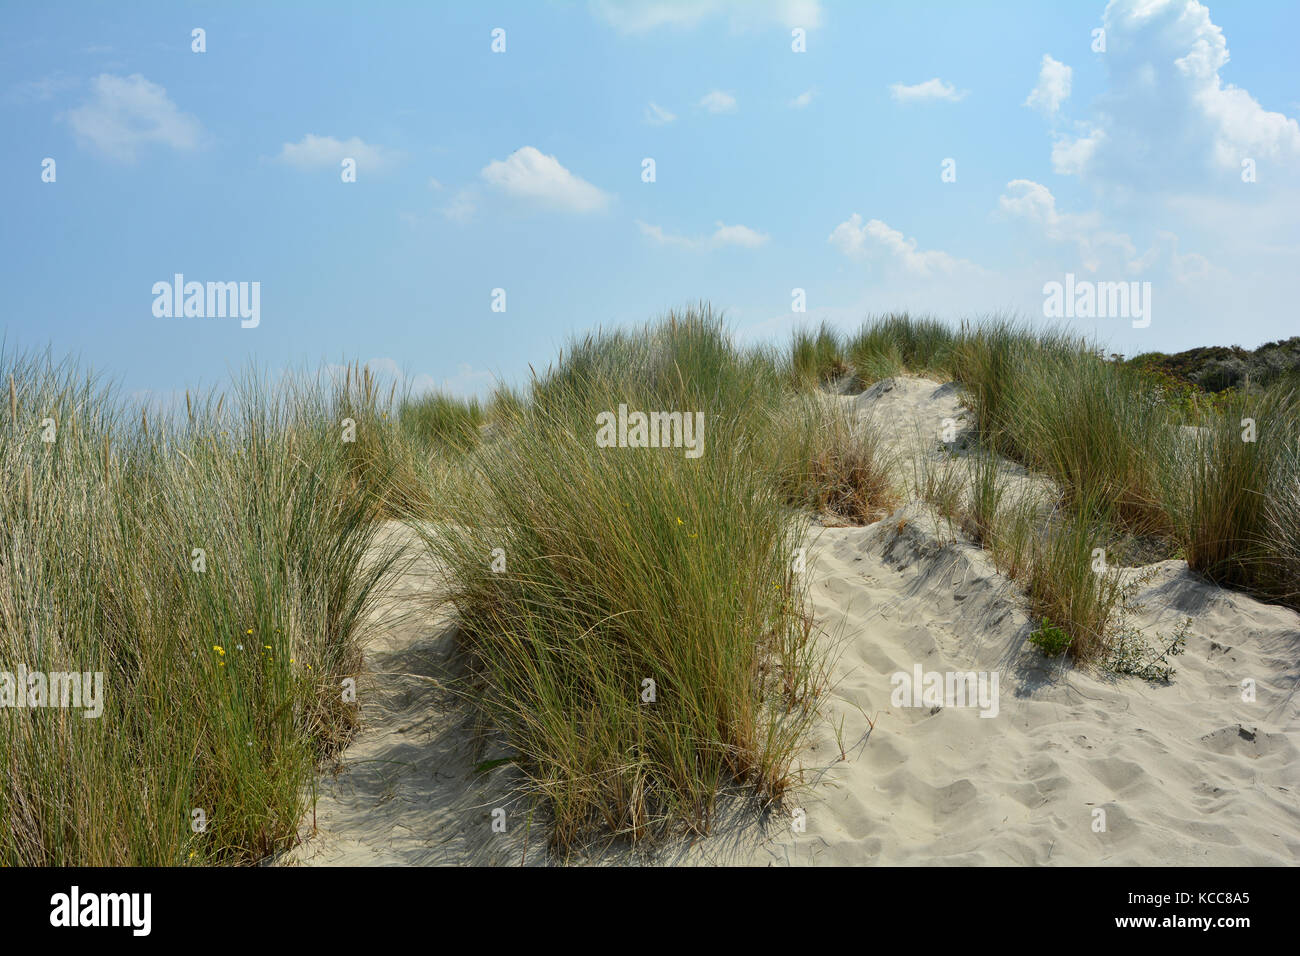 Beach oat in the sandy dunes on the North Sea coast  in the Netherlands on Zeeland on the island Schouwen-Duiveland Stock Photo